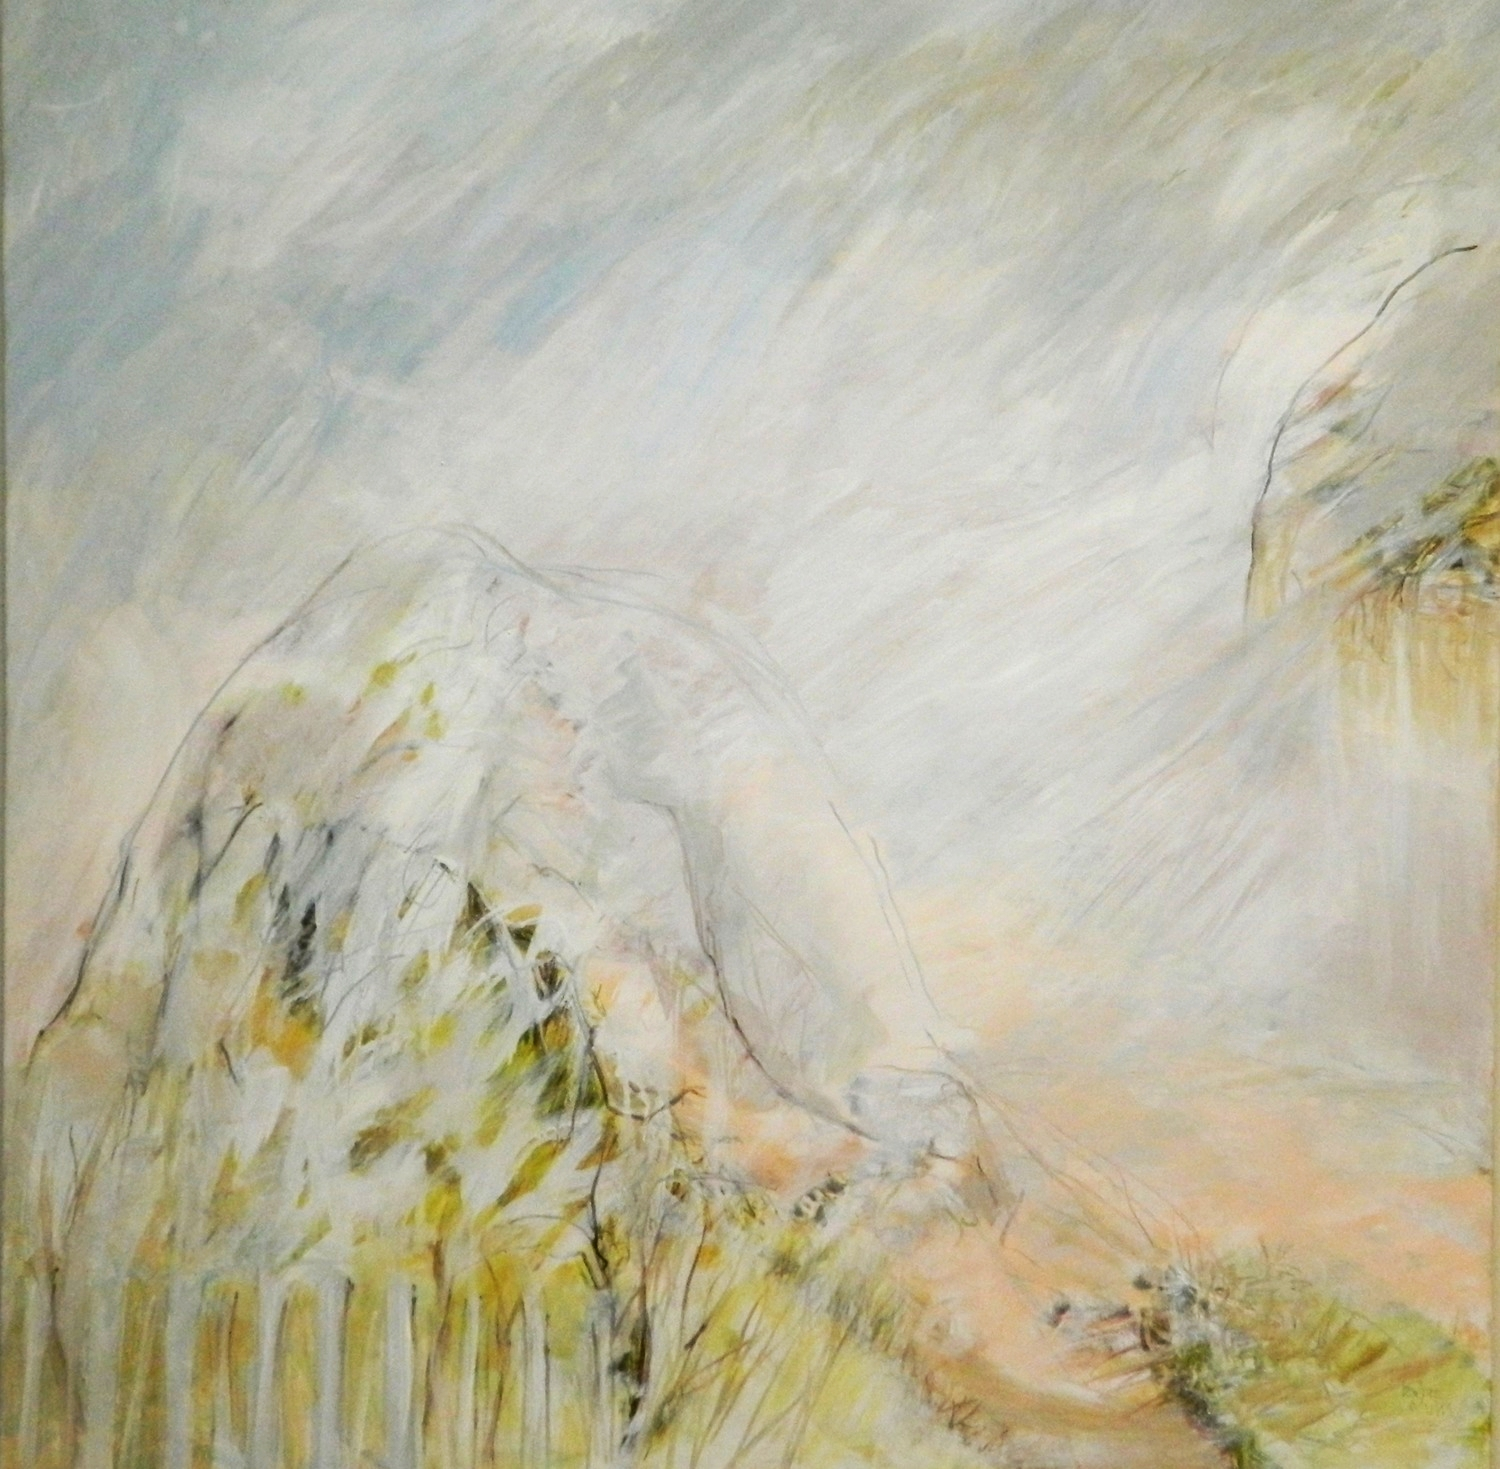 """""""Mountain...Ascending/Descending $1200Selected for printing on the invitations for Redlands Creative Alliance """"Linkages"""" Exhibition and displayed at Redland Regional Art Gallery in 2015..... currently on display at Hilier & Skuse Gallery at Bundall Rd, Surfers Paradise."""